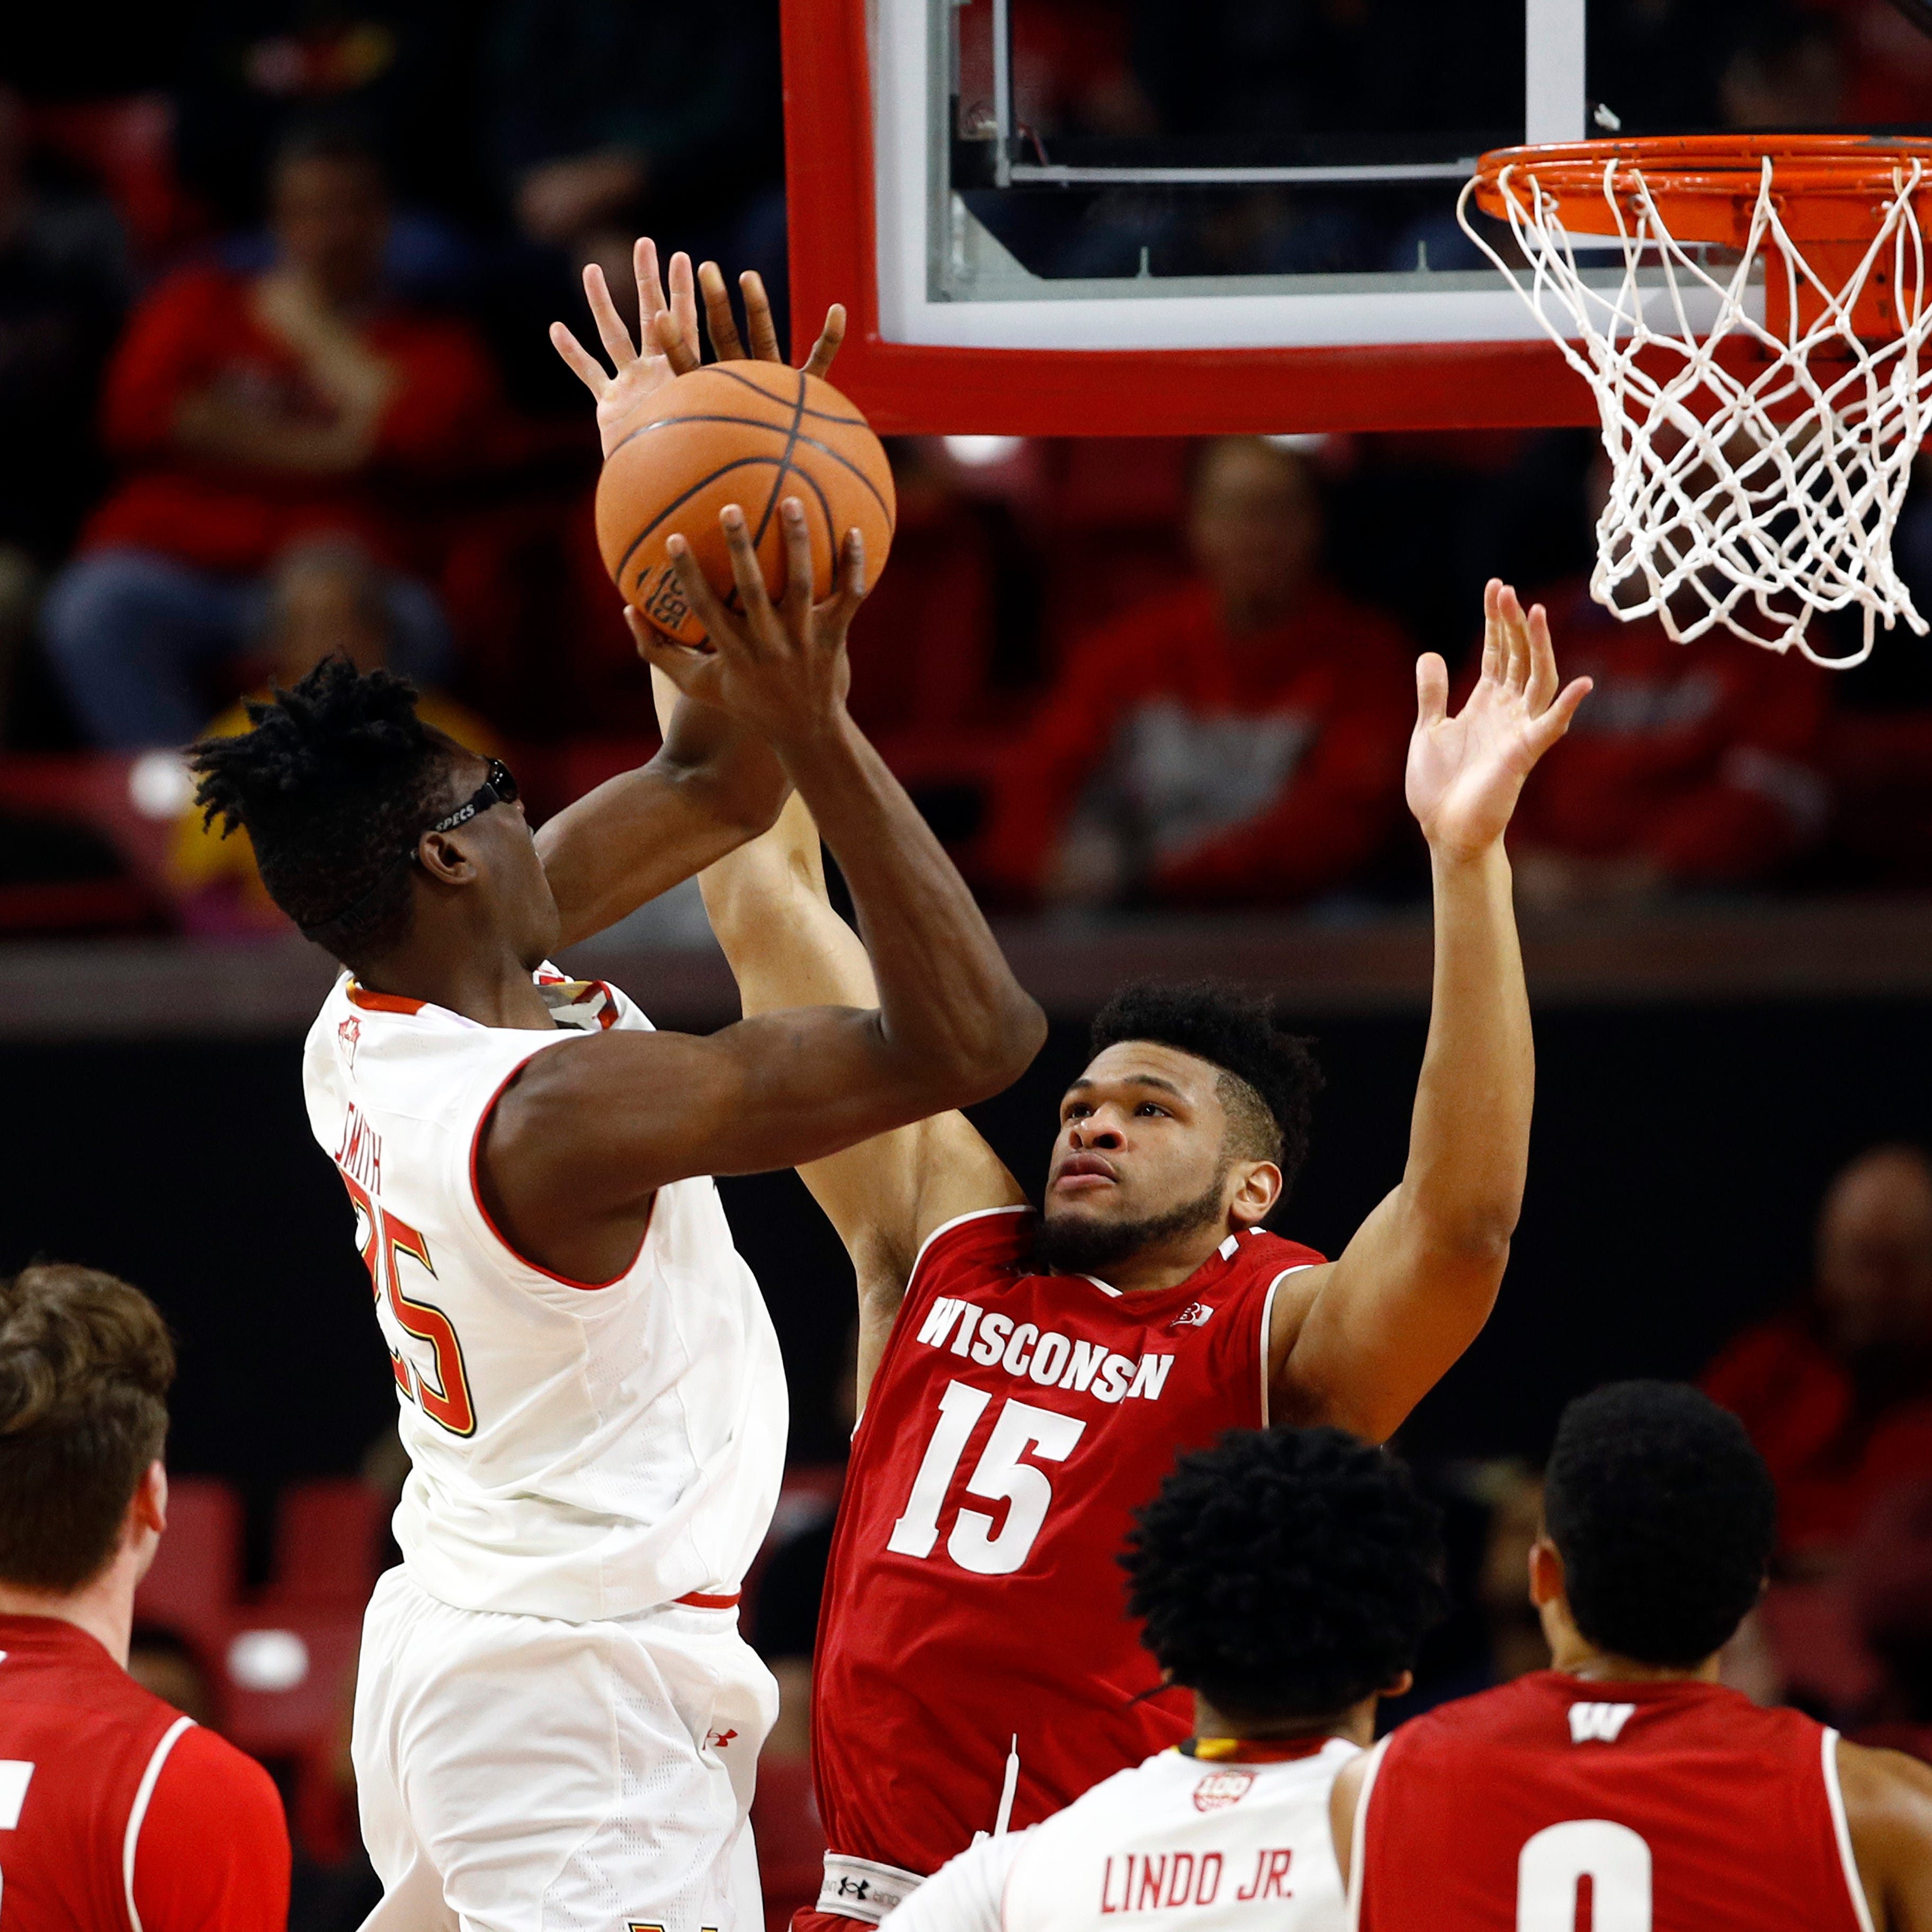 Maryland 64, UW 60: A gritty performance isn't enough after a frigid first half